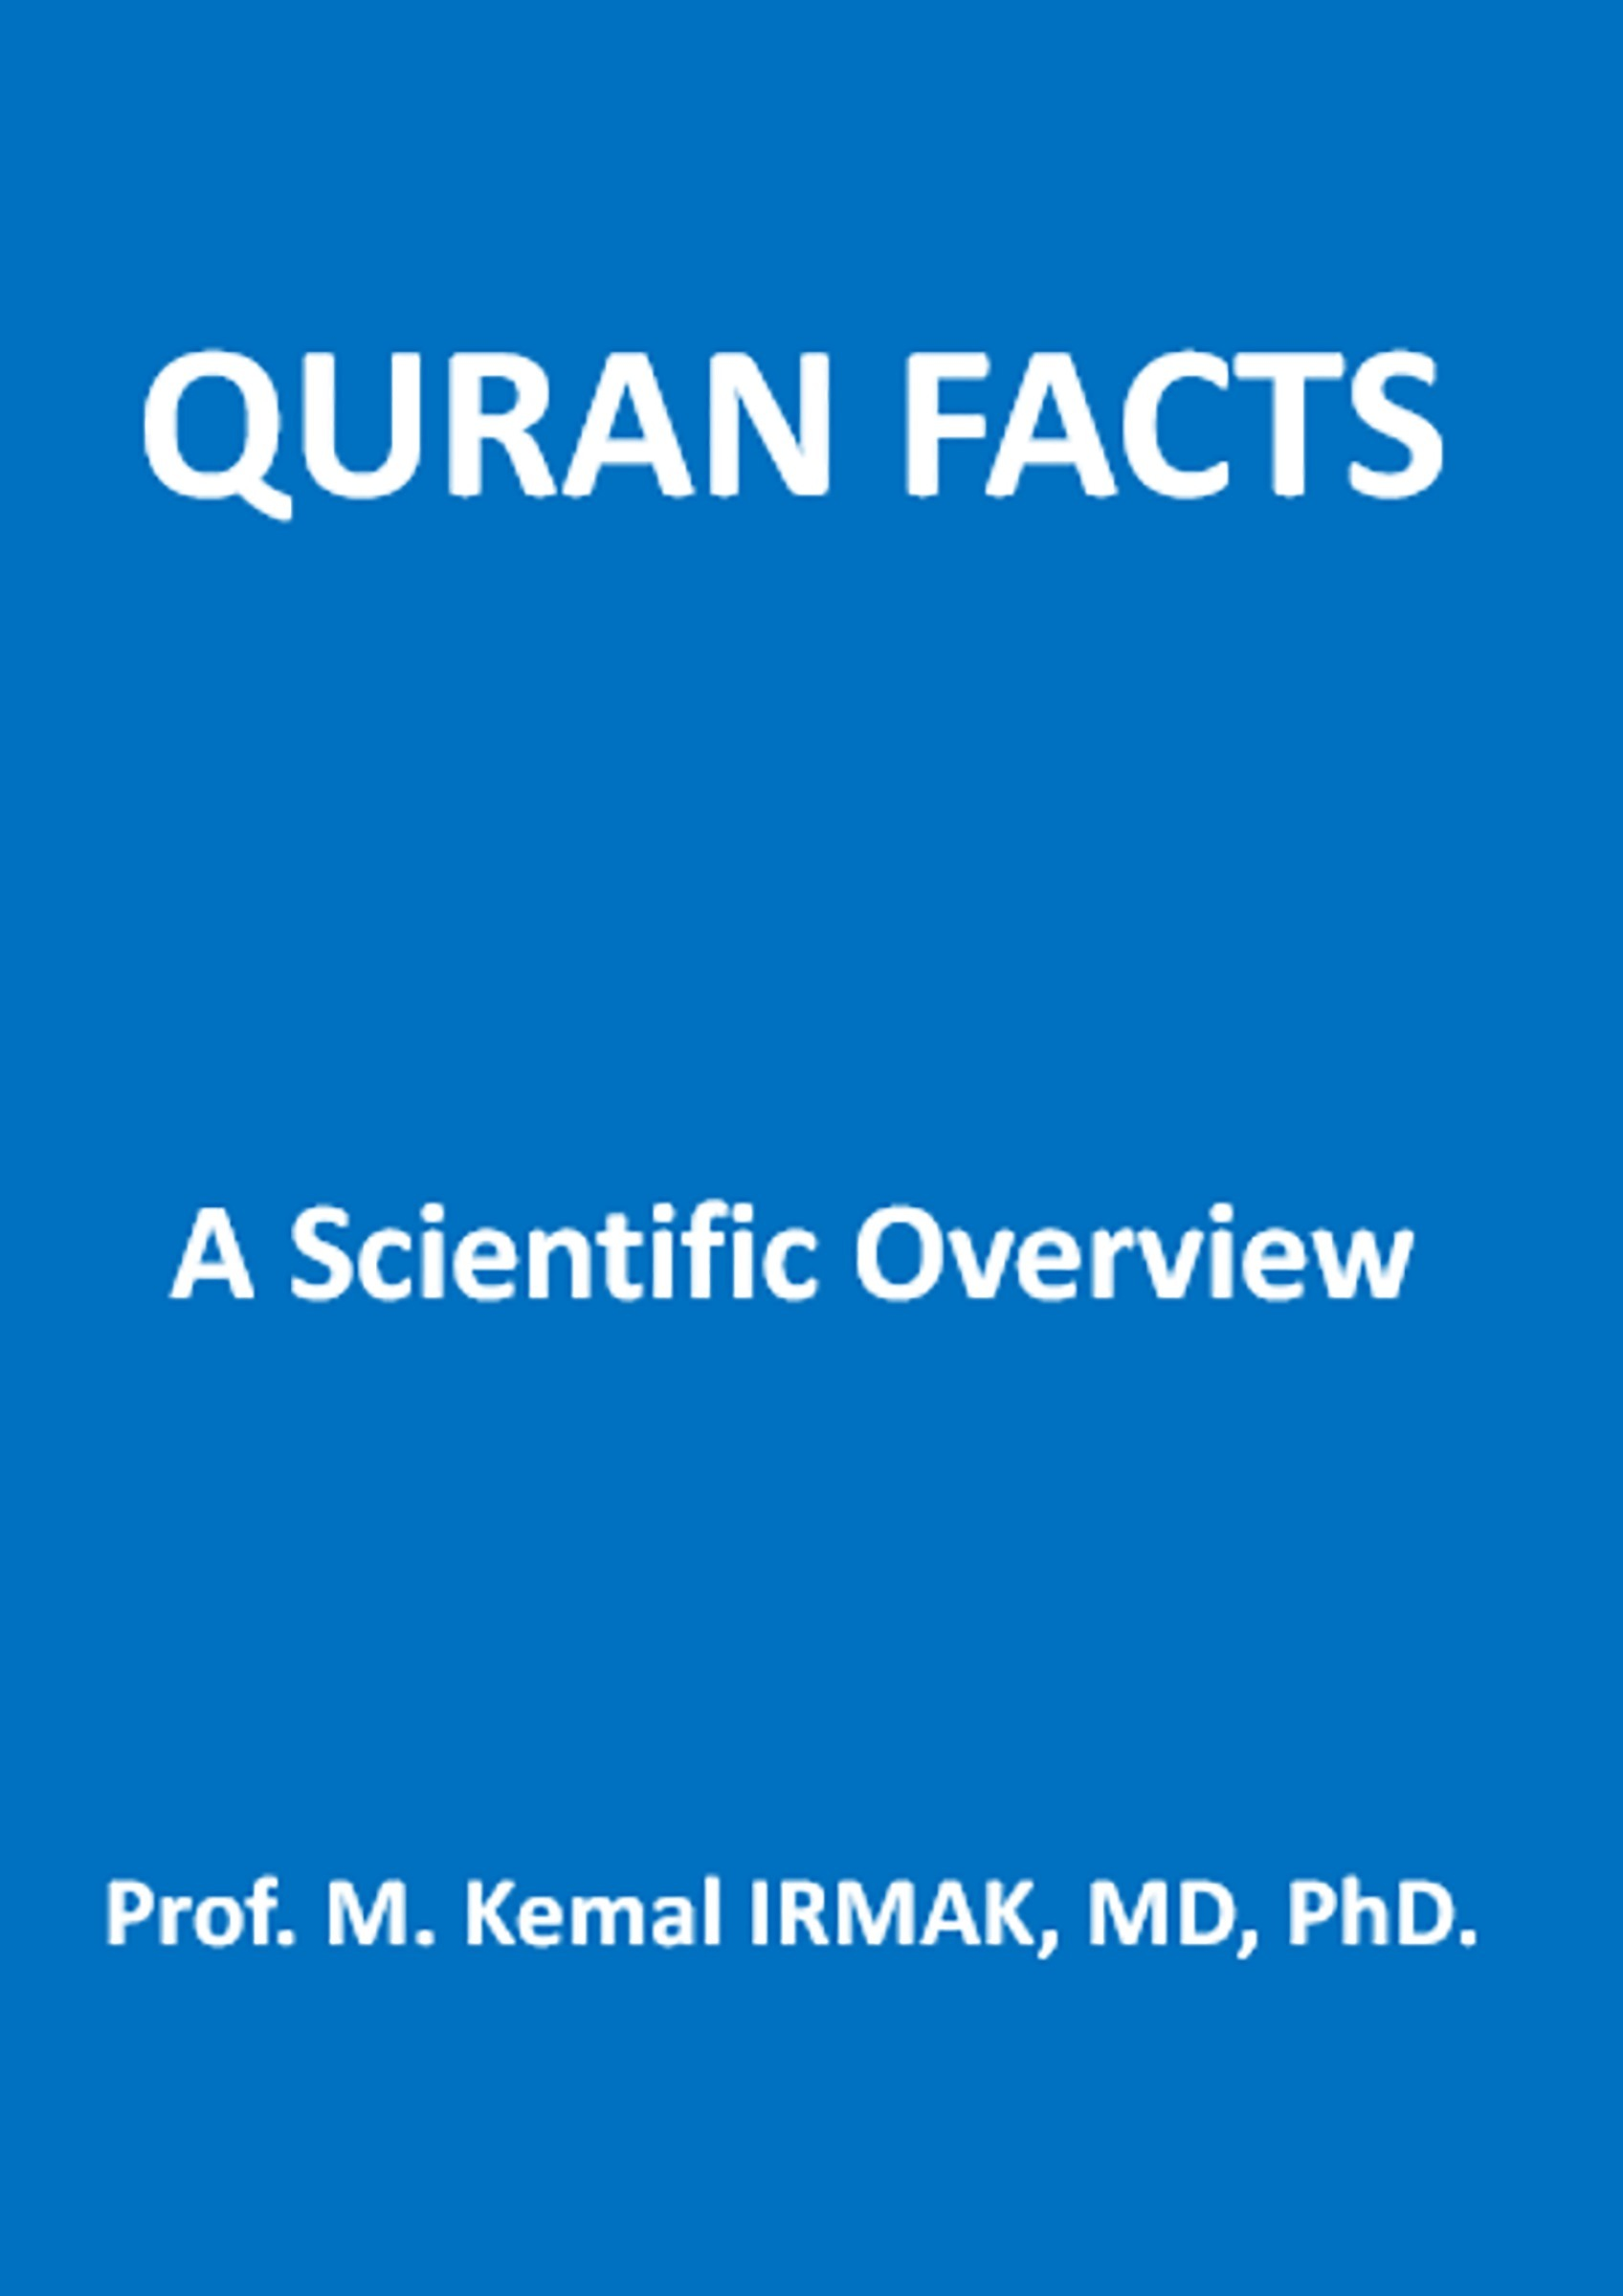 Quran Facts: A Scientific Overview